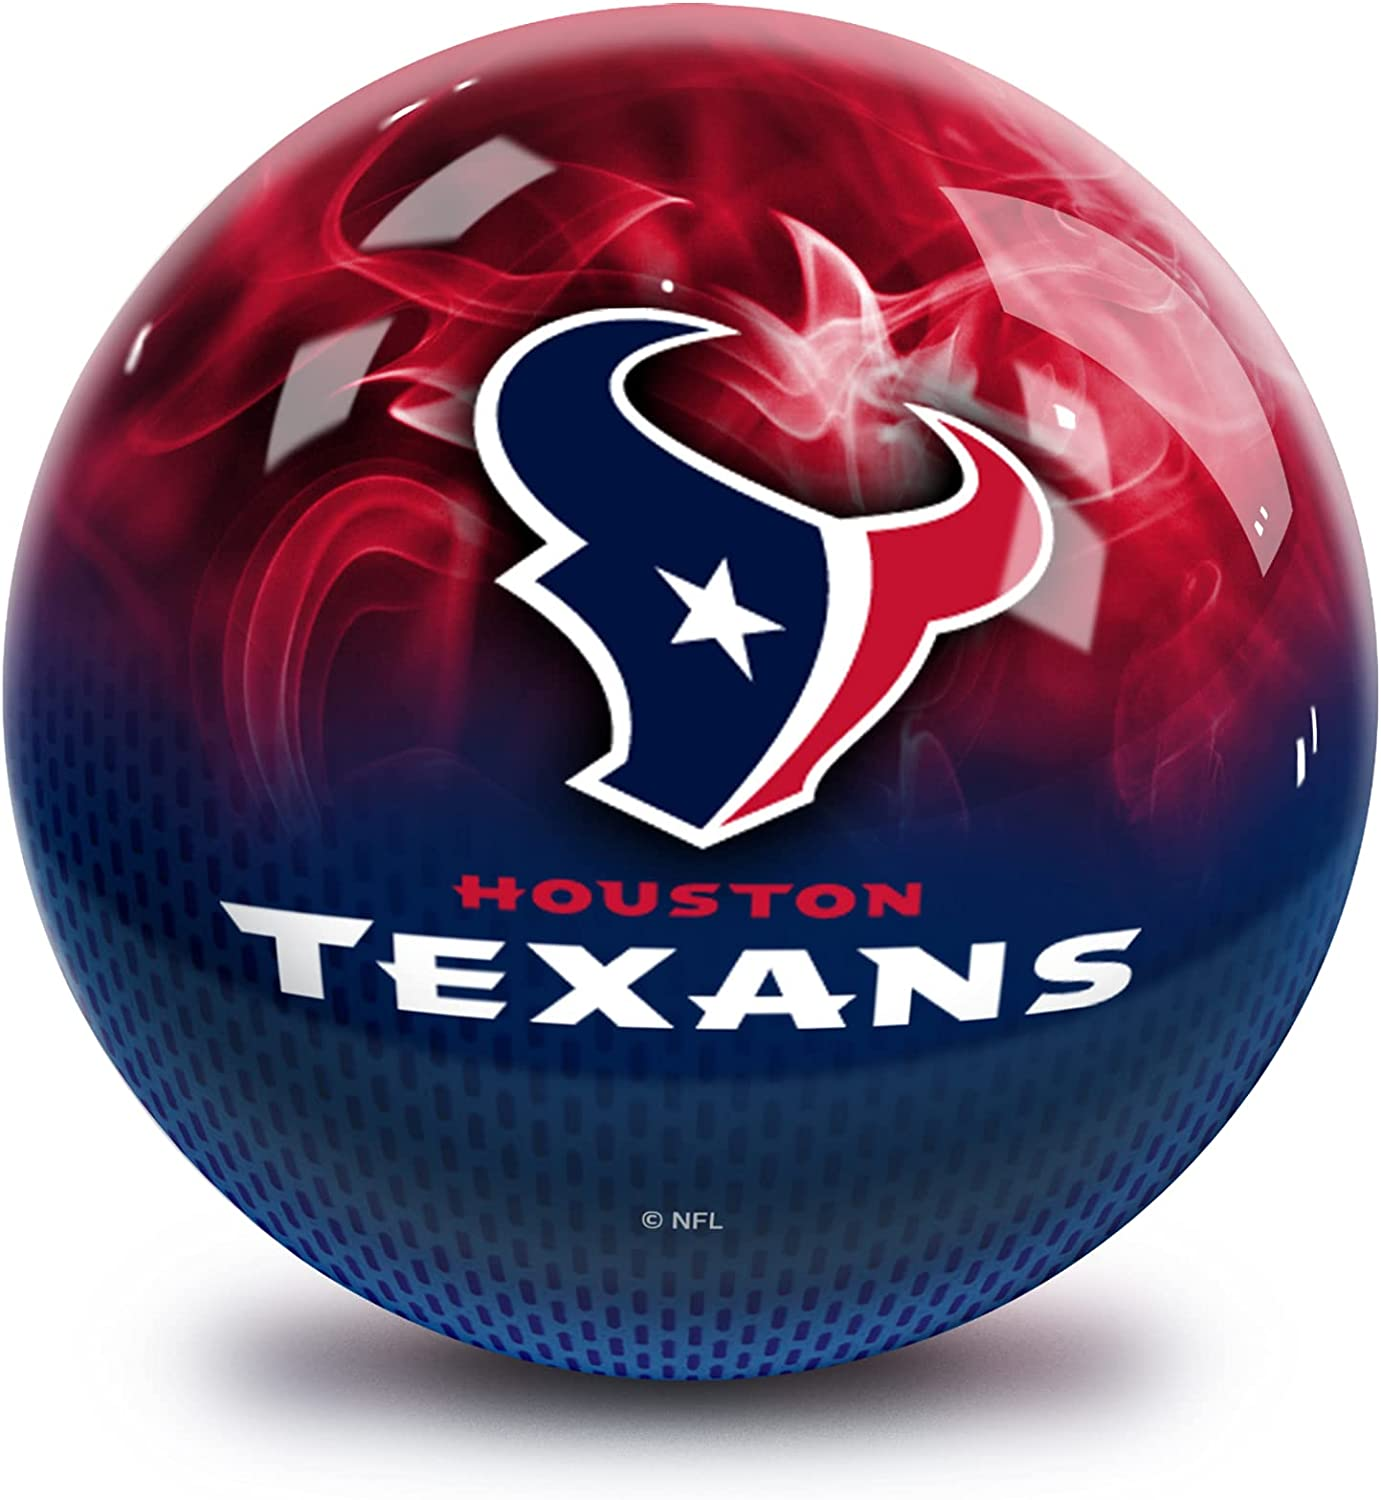 Strikeforce Bowling NFL Popular popular Houston On Undrilled Large special price !! Fire Texans